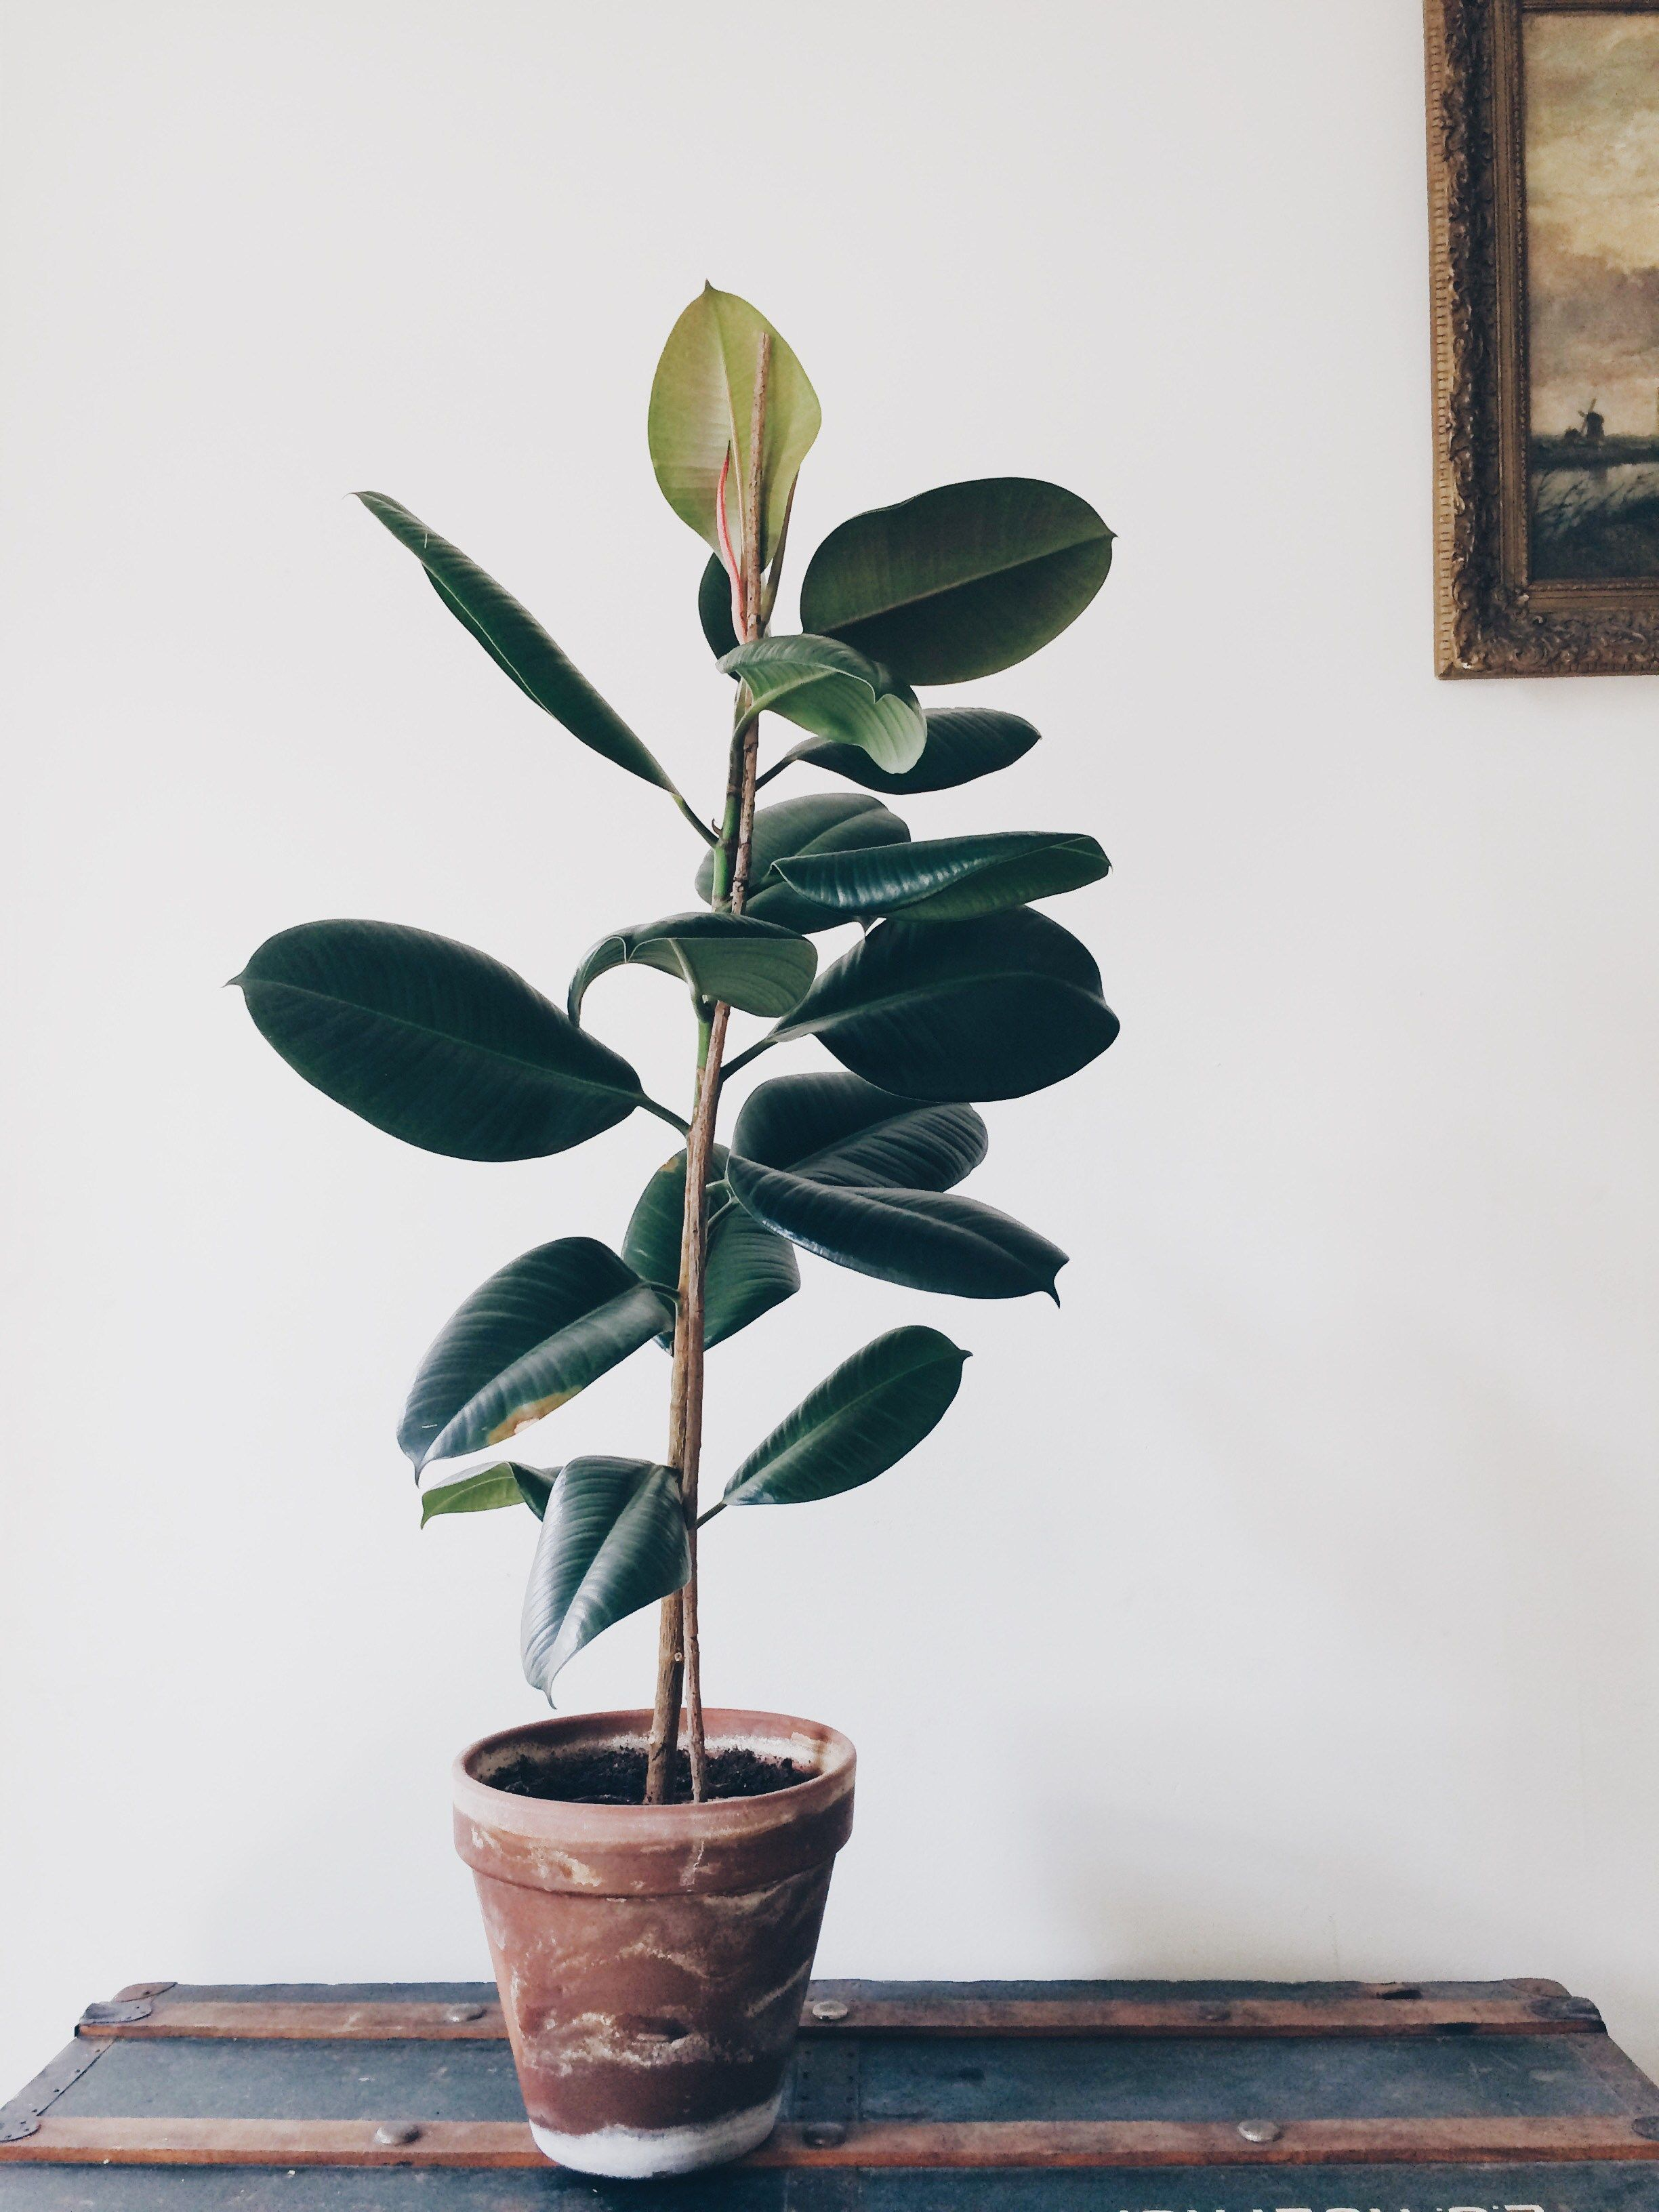 Ficus Elastica, Also Known As Rubberplant Or Rubbertree